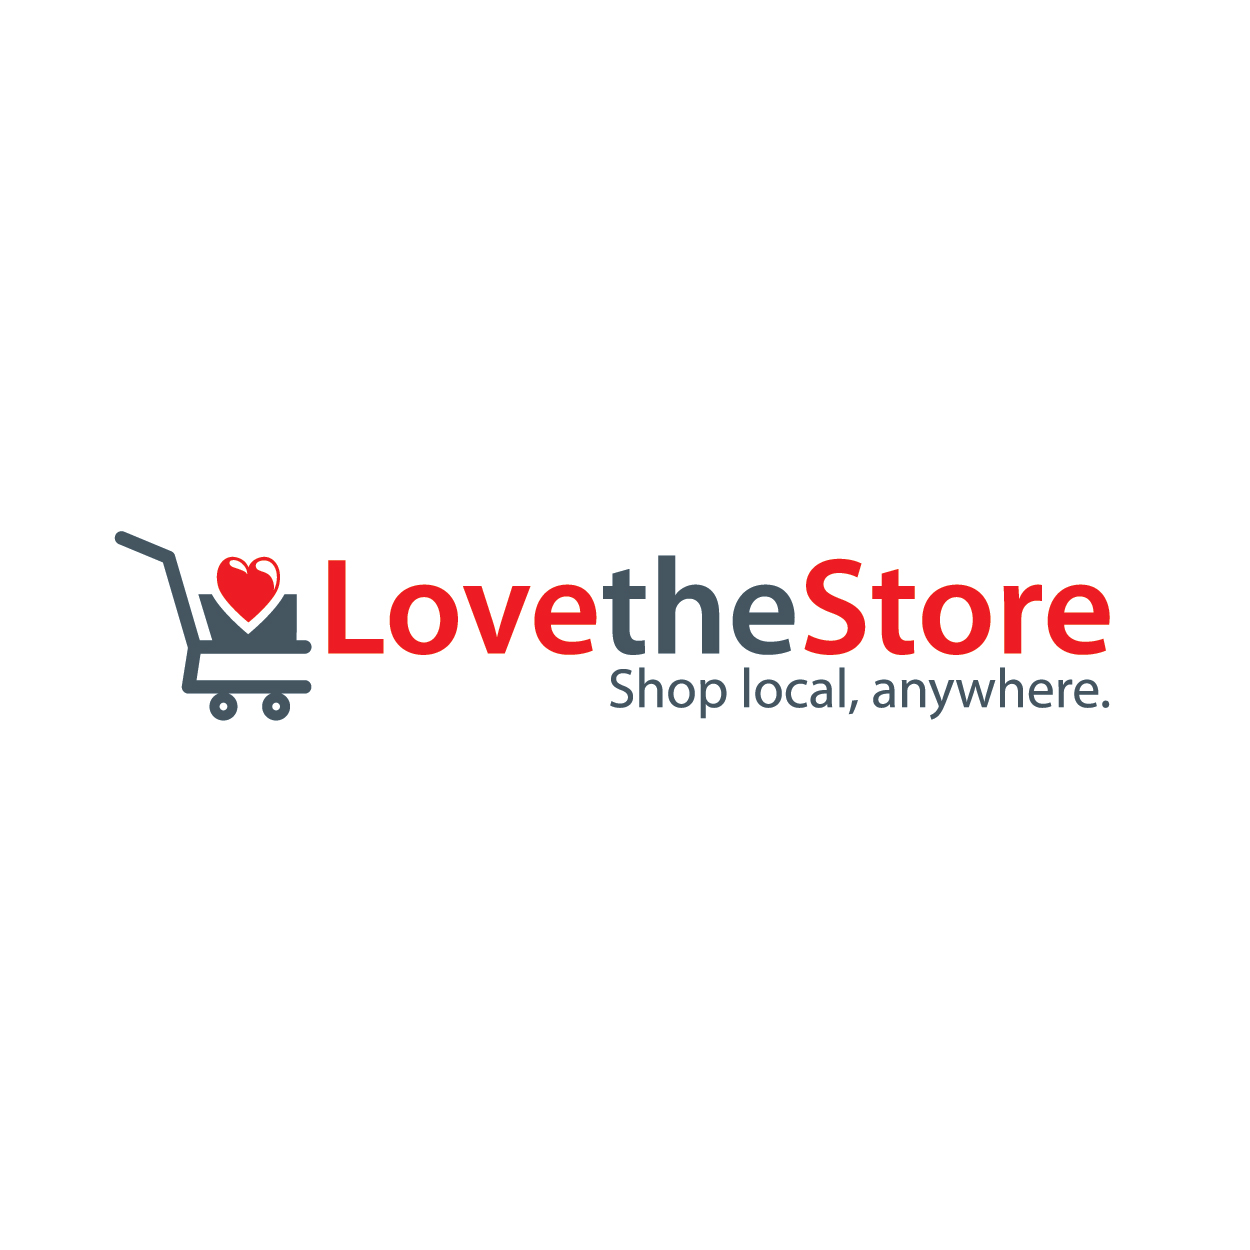 Logo Design by Josephope Sardalla - Entry No. 7 in the Logo Design Contest Logo for online retail aggregator website.